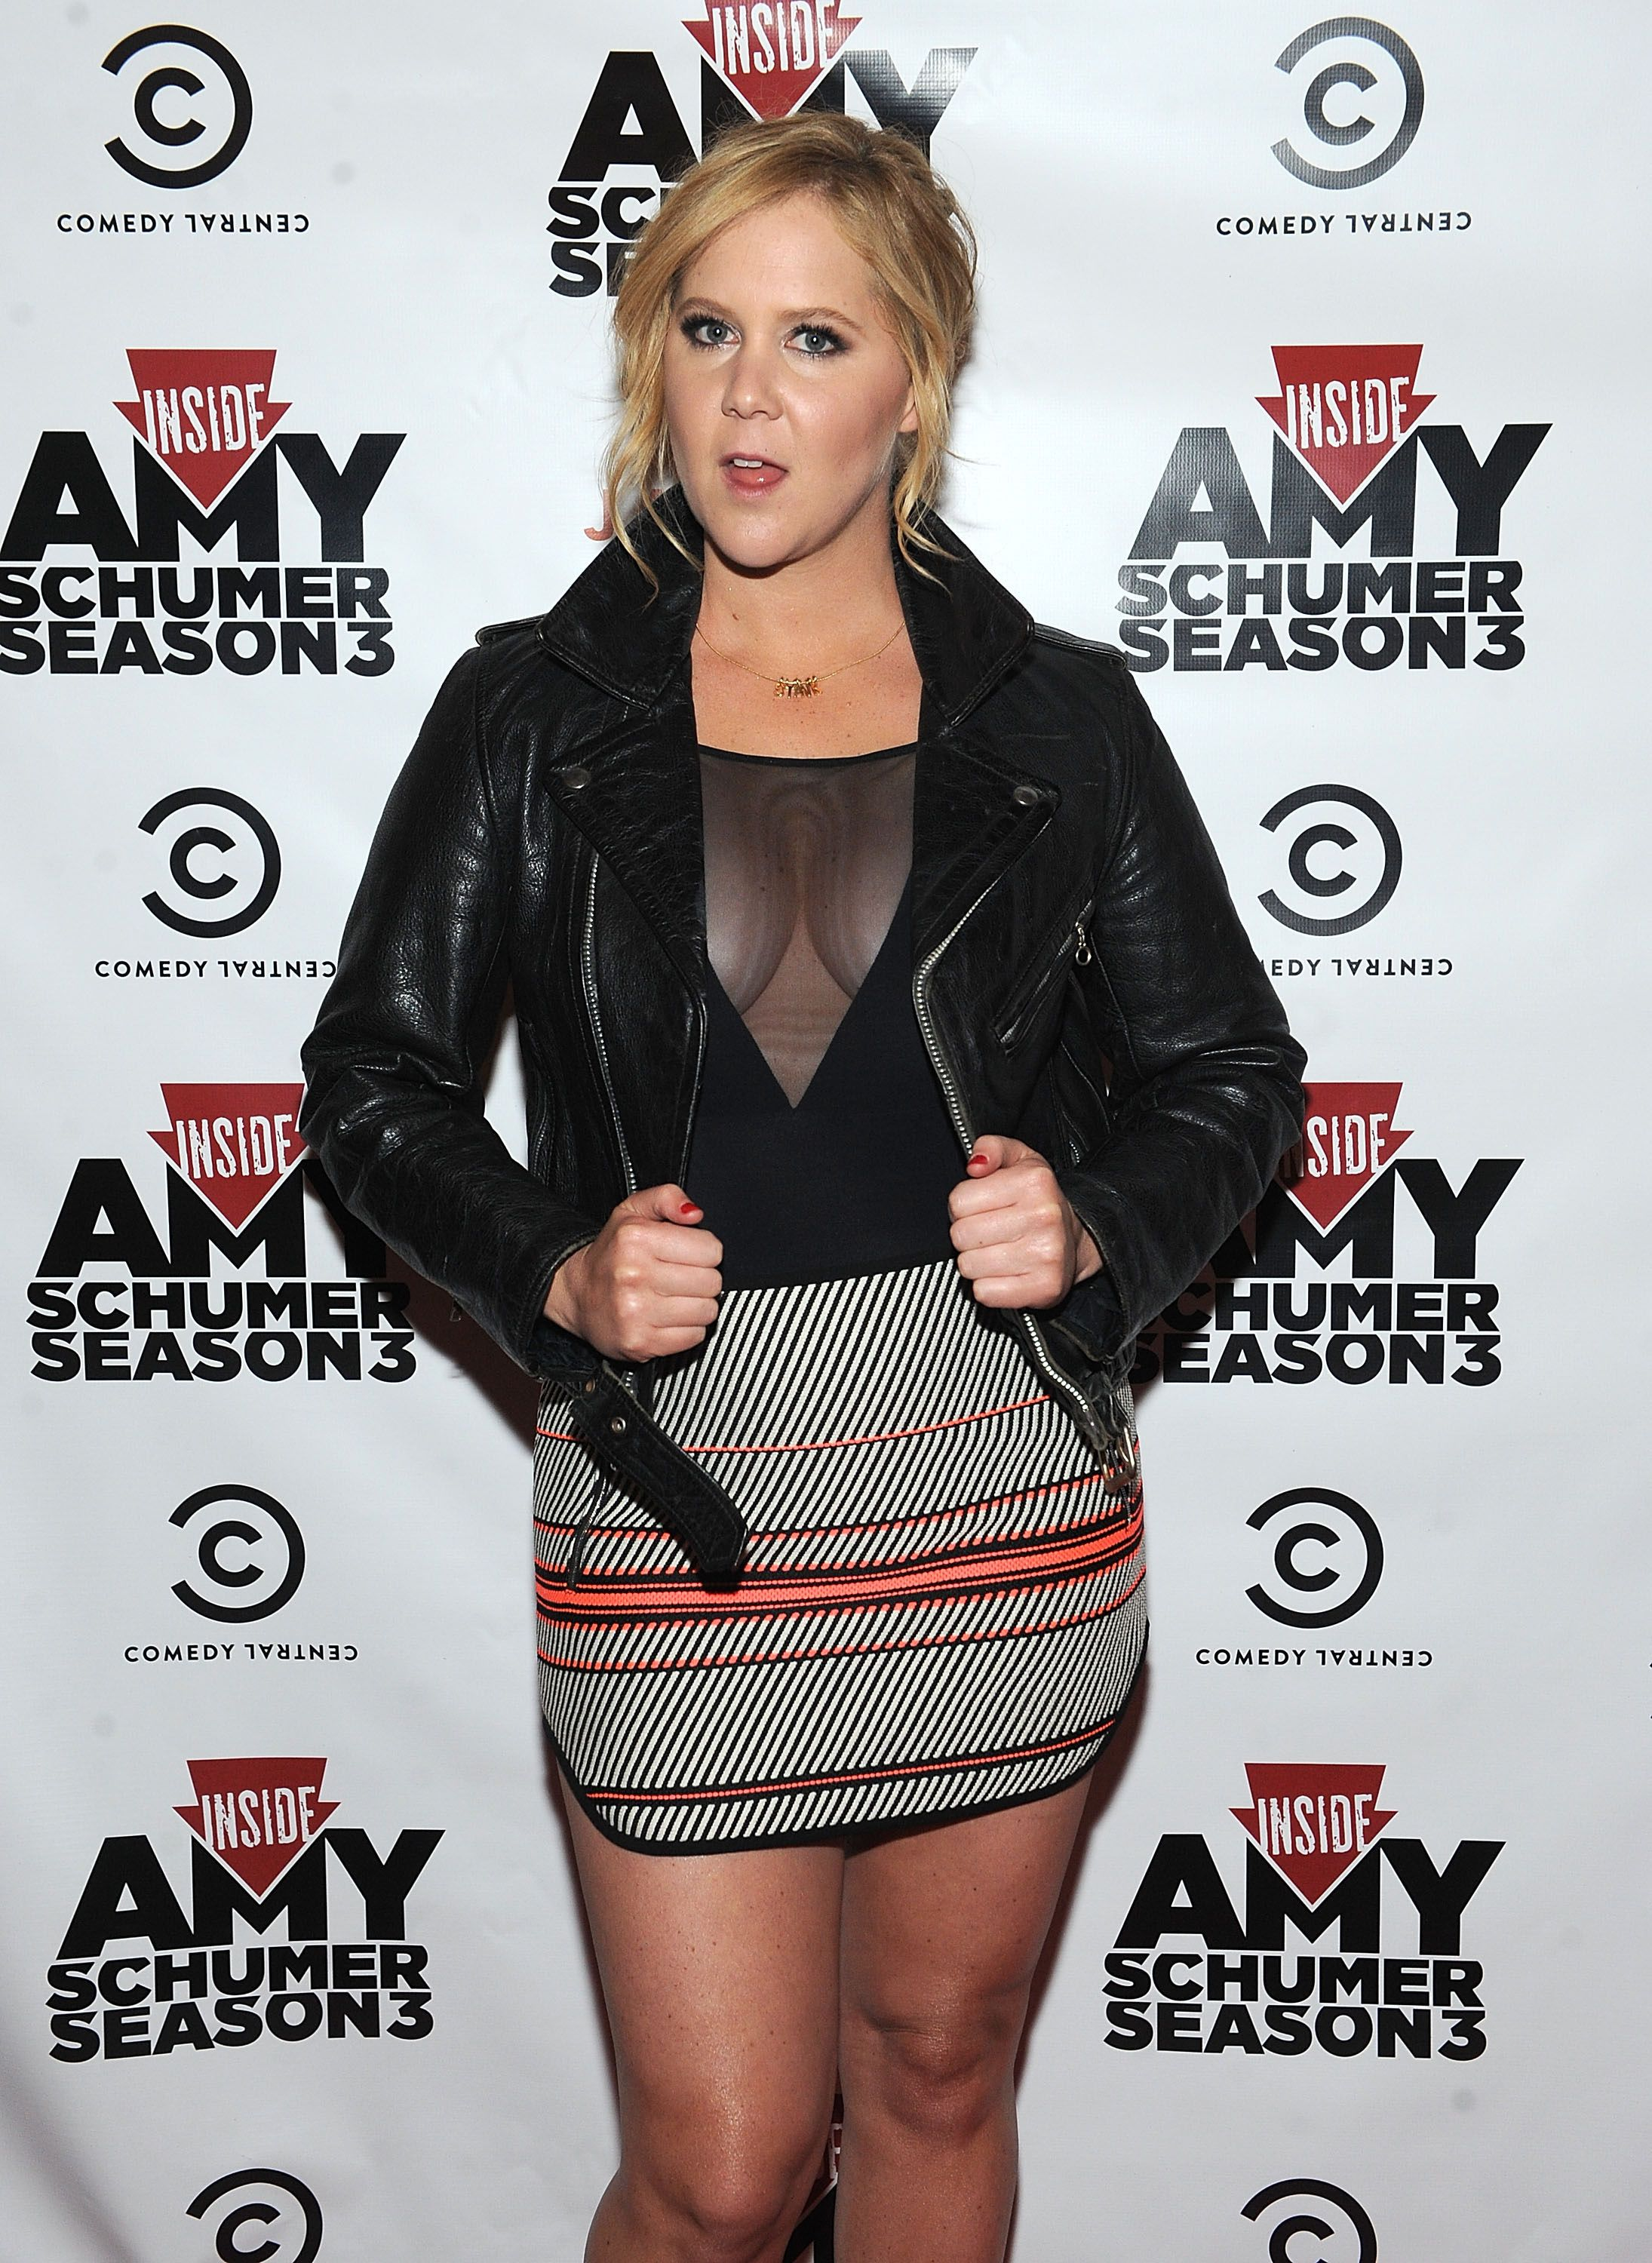 Amy Schumer Nude Scene this skirt is too short for me, but i like everything else